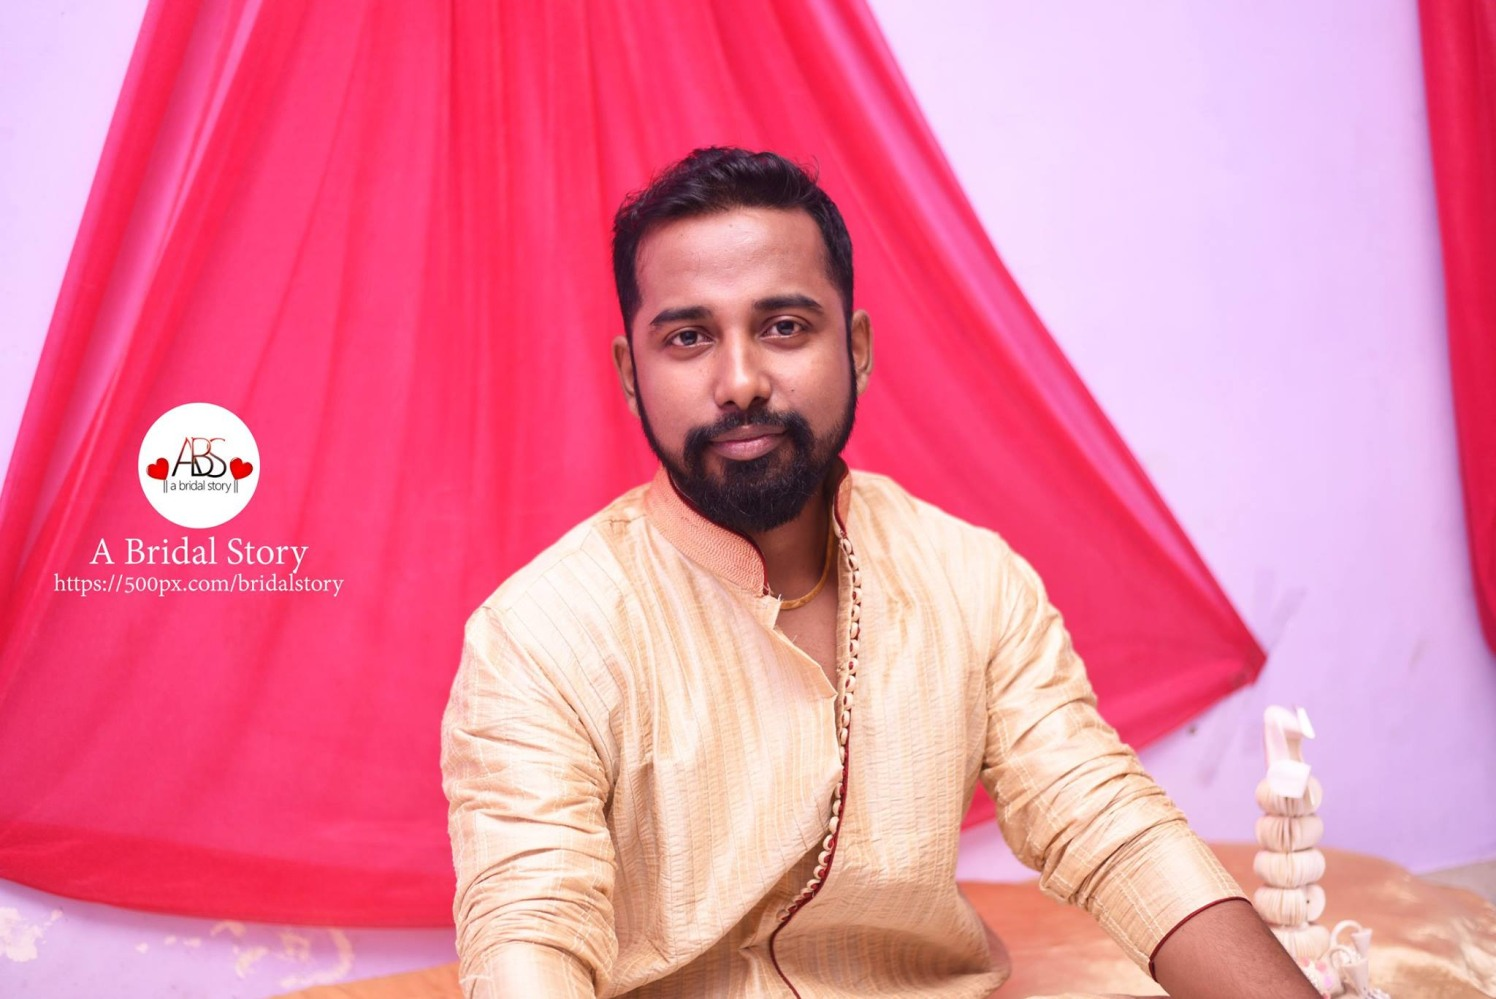 Valiant bengali groom by A Bridal Story Wedding-photography | Weddings Photos & Ideas